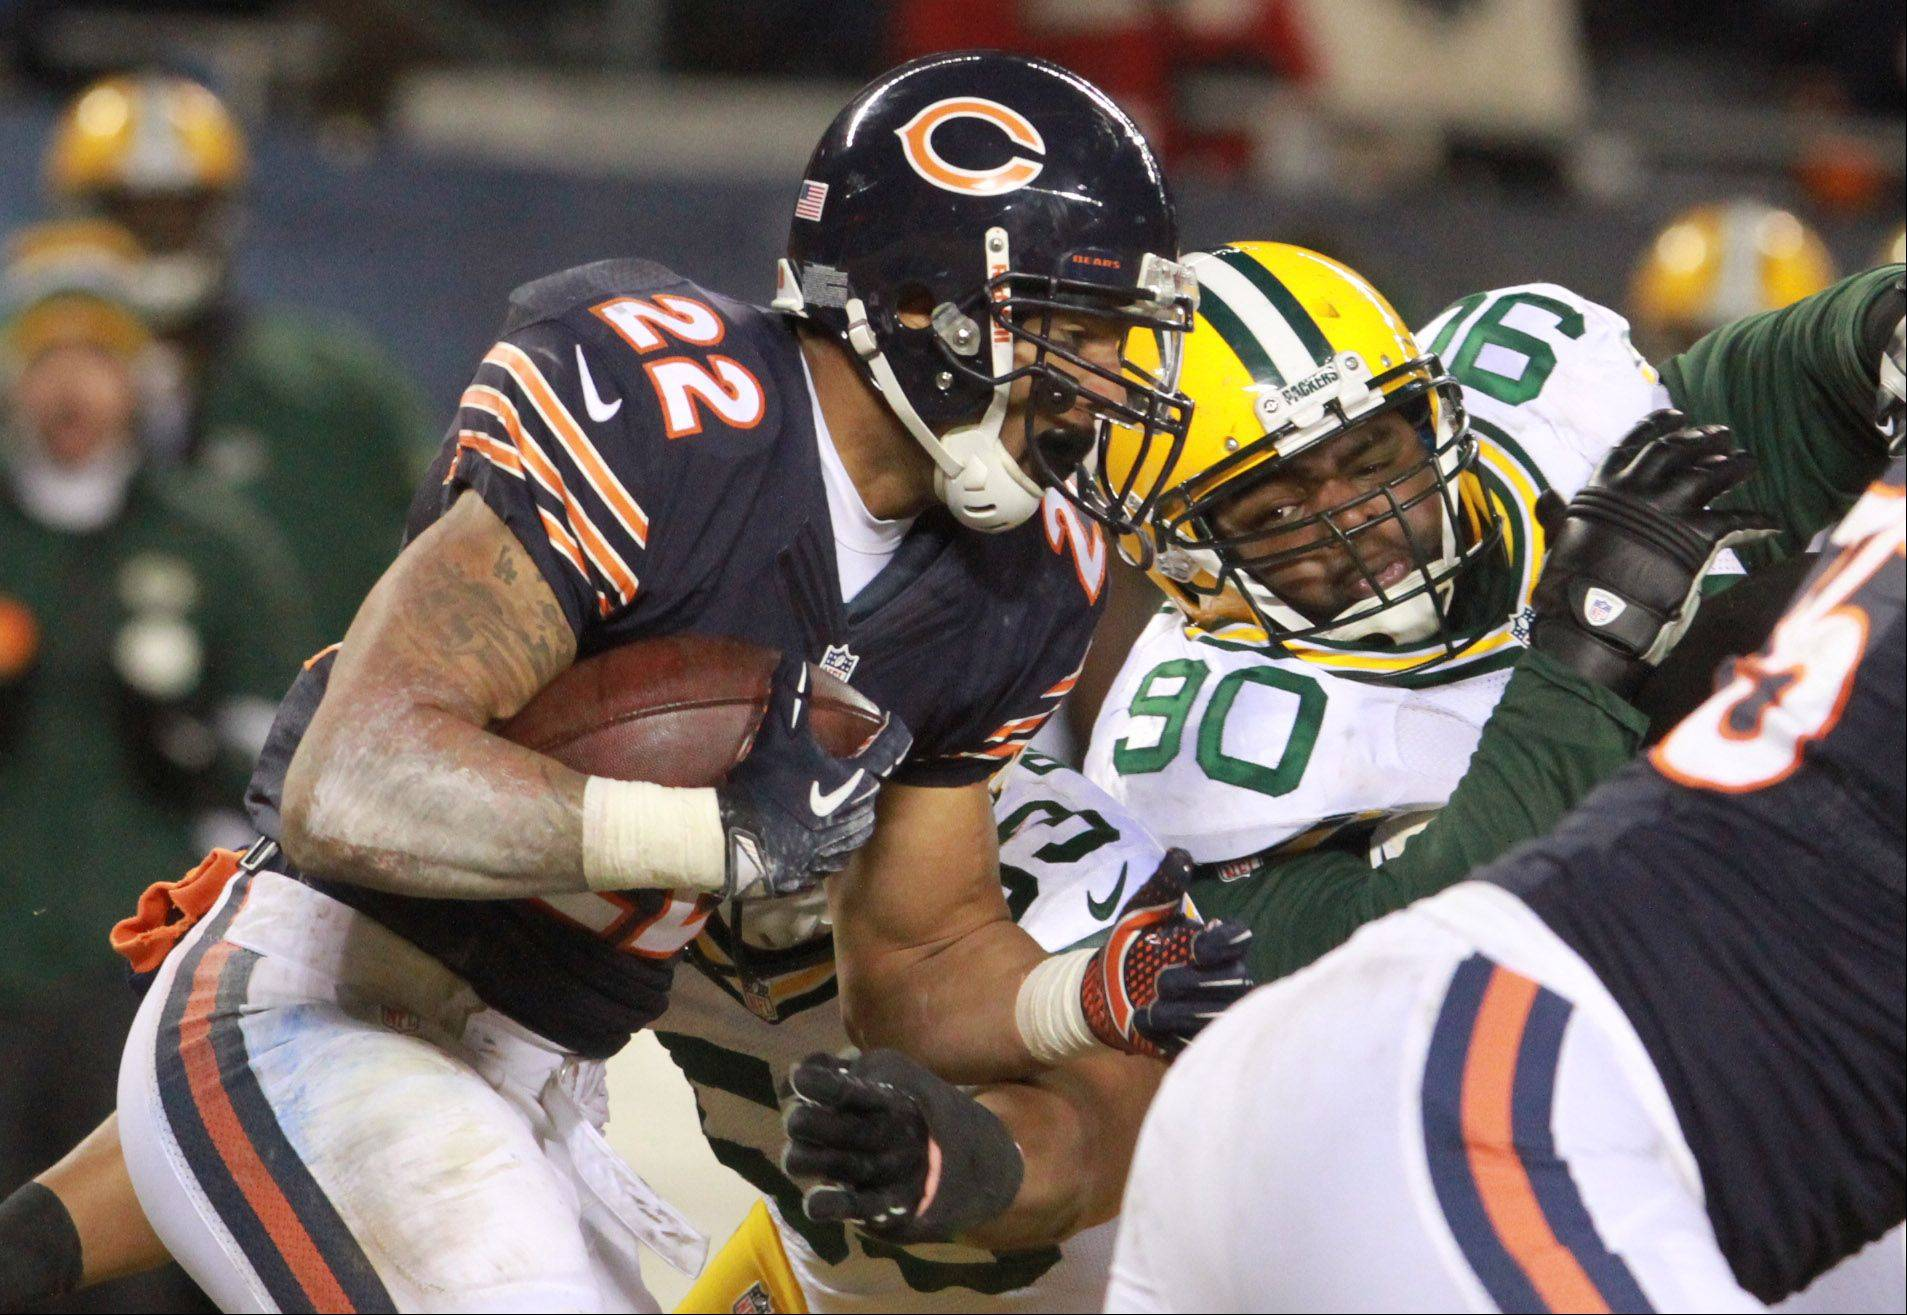 Matt Forte finished the season with 1,933 yards from scrimmage, the second-most ever by a Bears player.